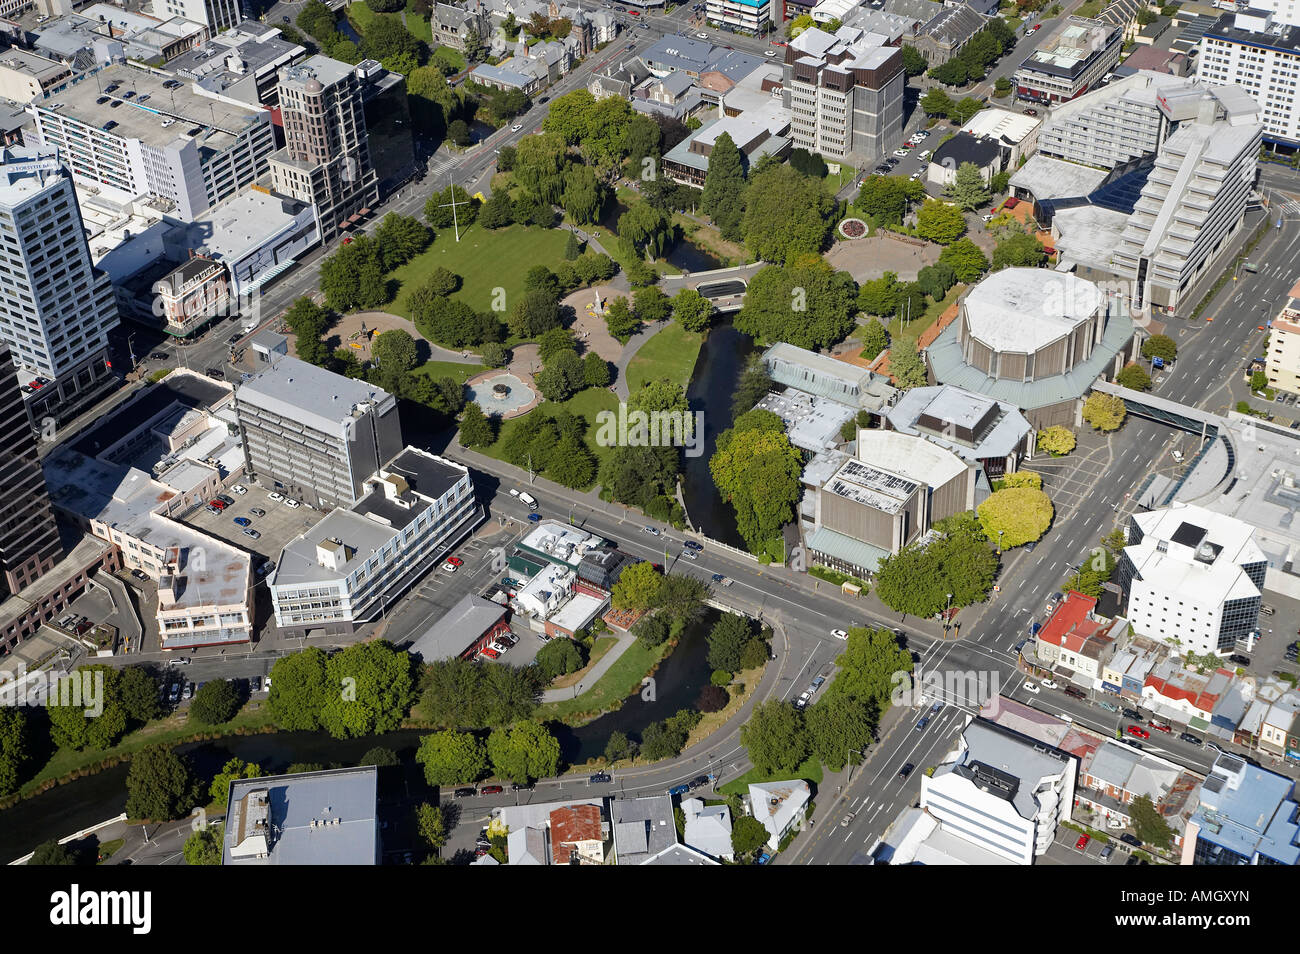 Victoria Square and Avon River Christchurch Canterbury South Island New Zealand aerial - Stock Image